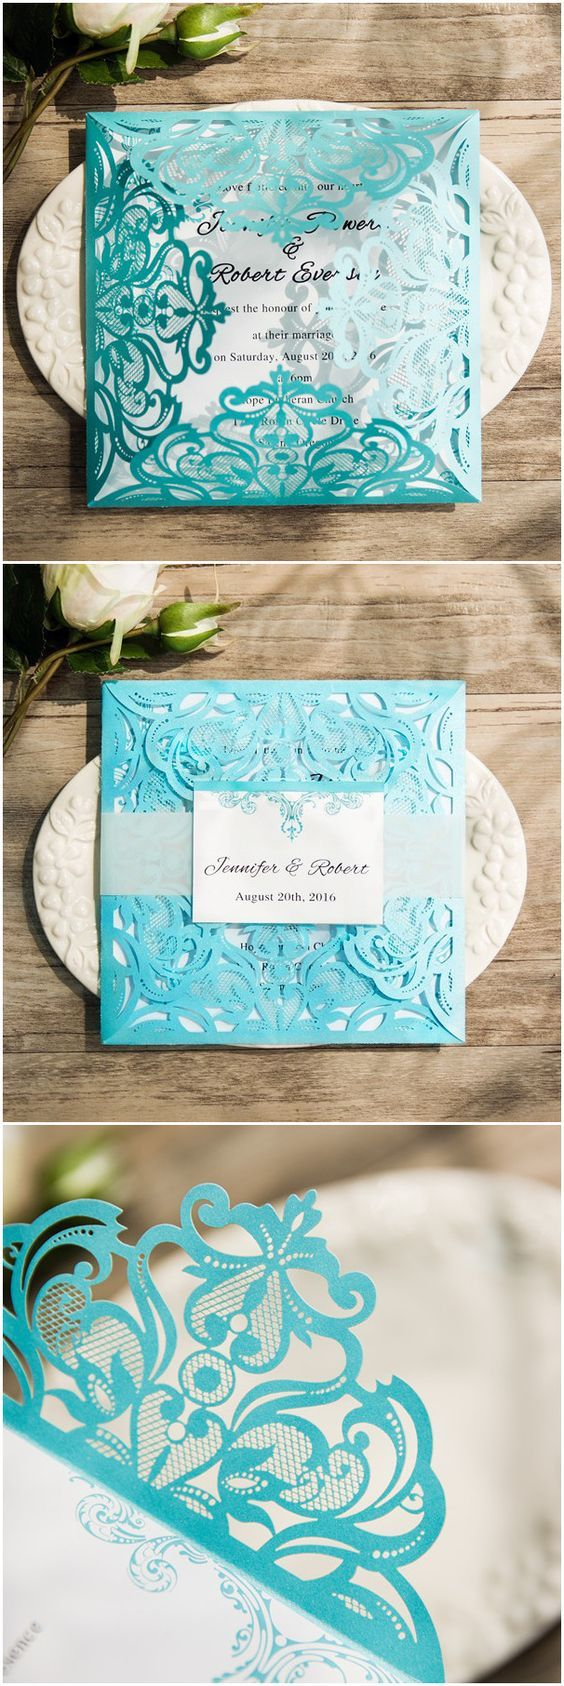 tiffany wedding invitations tiffany blue wedding invitations 25 Best Ideas about Tiffany Wedding Invitations on Pinterest Tiffany wedding Tiffany blue flowers and Teal wedding invitations